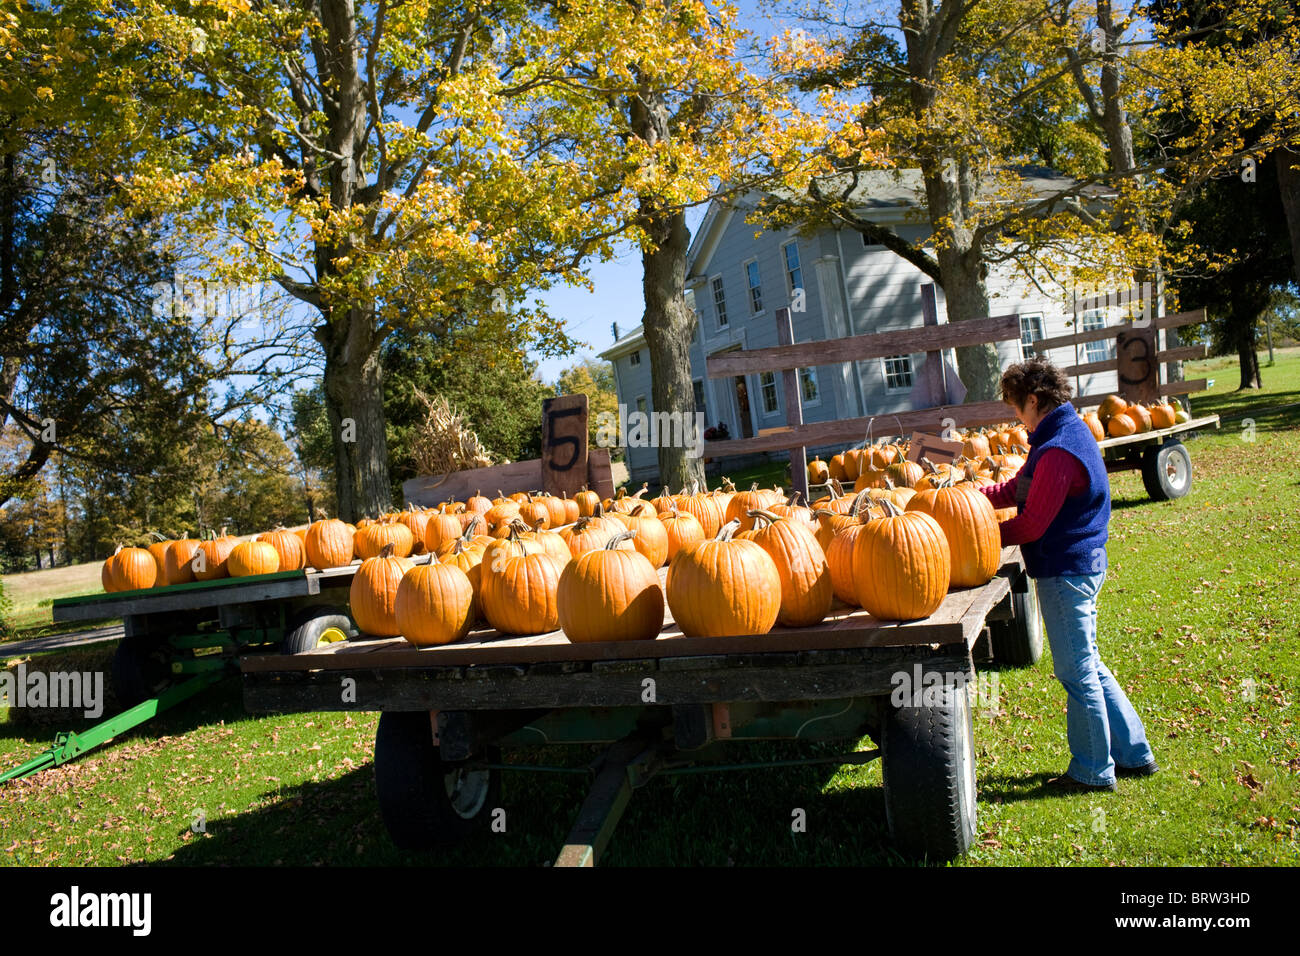 Woman selecting pumpkins for sale at a farm in Mohawk Valley of New York State - Stock Image